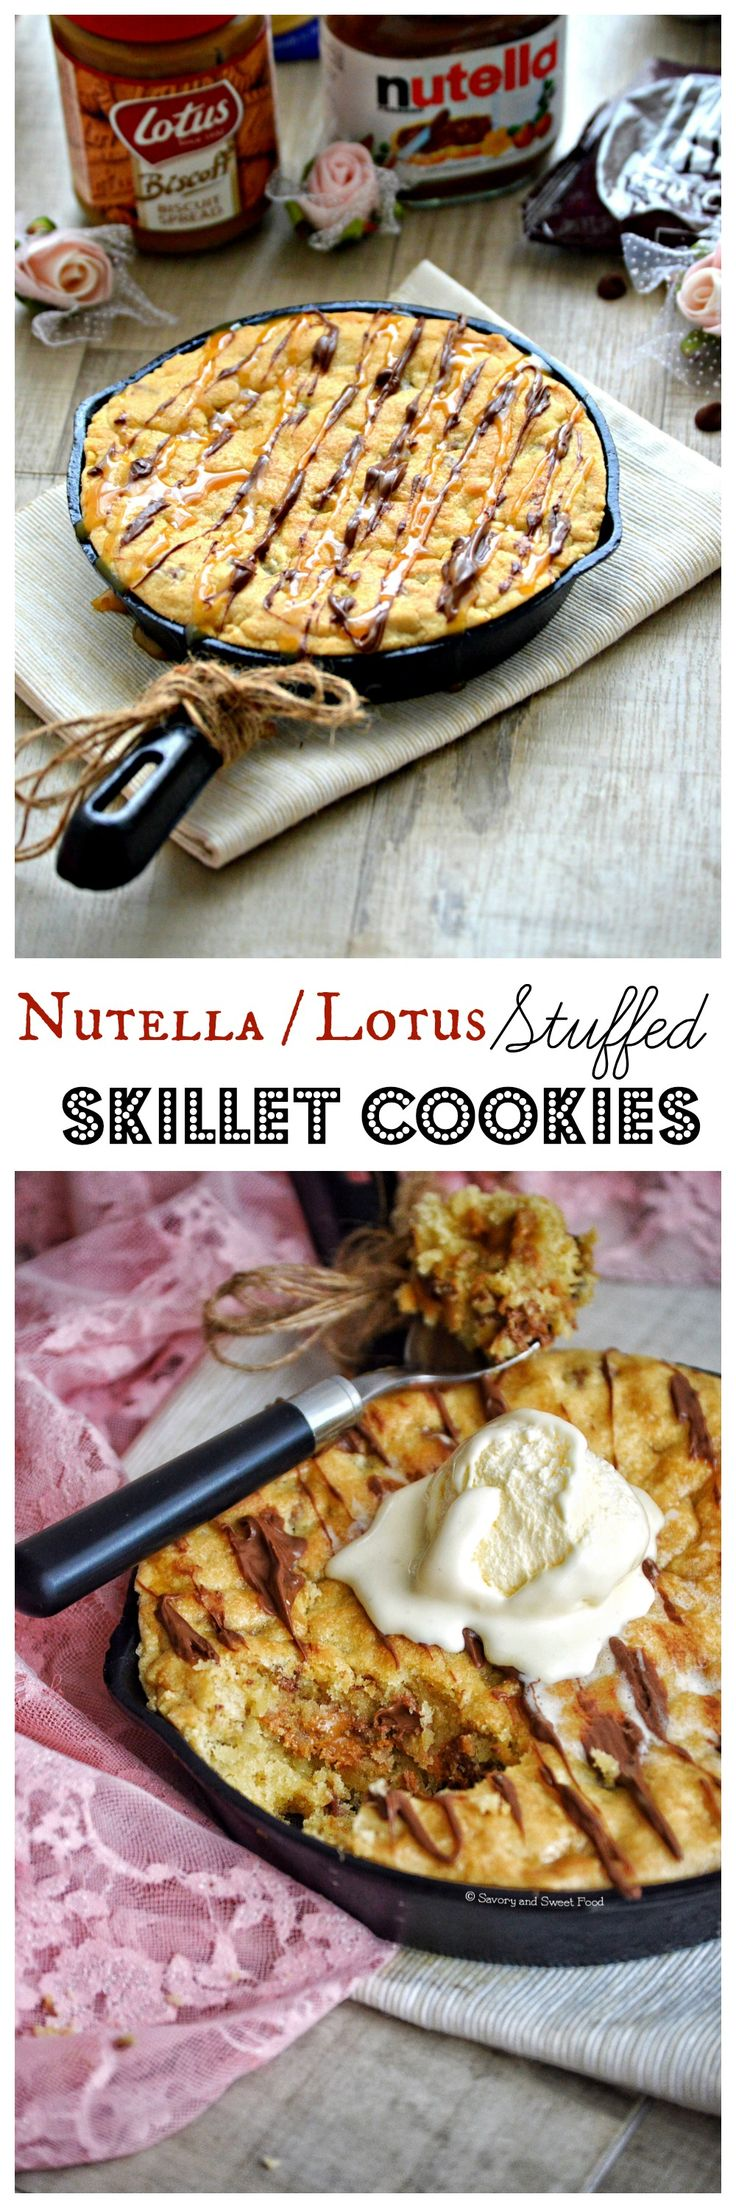 A gooey skillet cookie filled with Nutella or Lotus Biscoff spread, loaded with chocolate bits. It can be served with a scoop or two of your favourite ice cream and then drizzled with chocolate and caramel sauce. It can't get better than this.